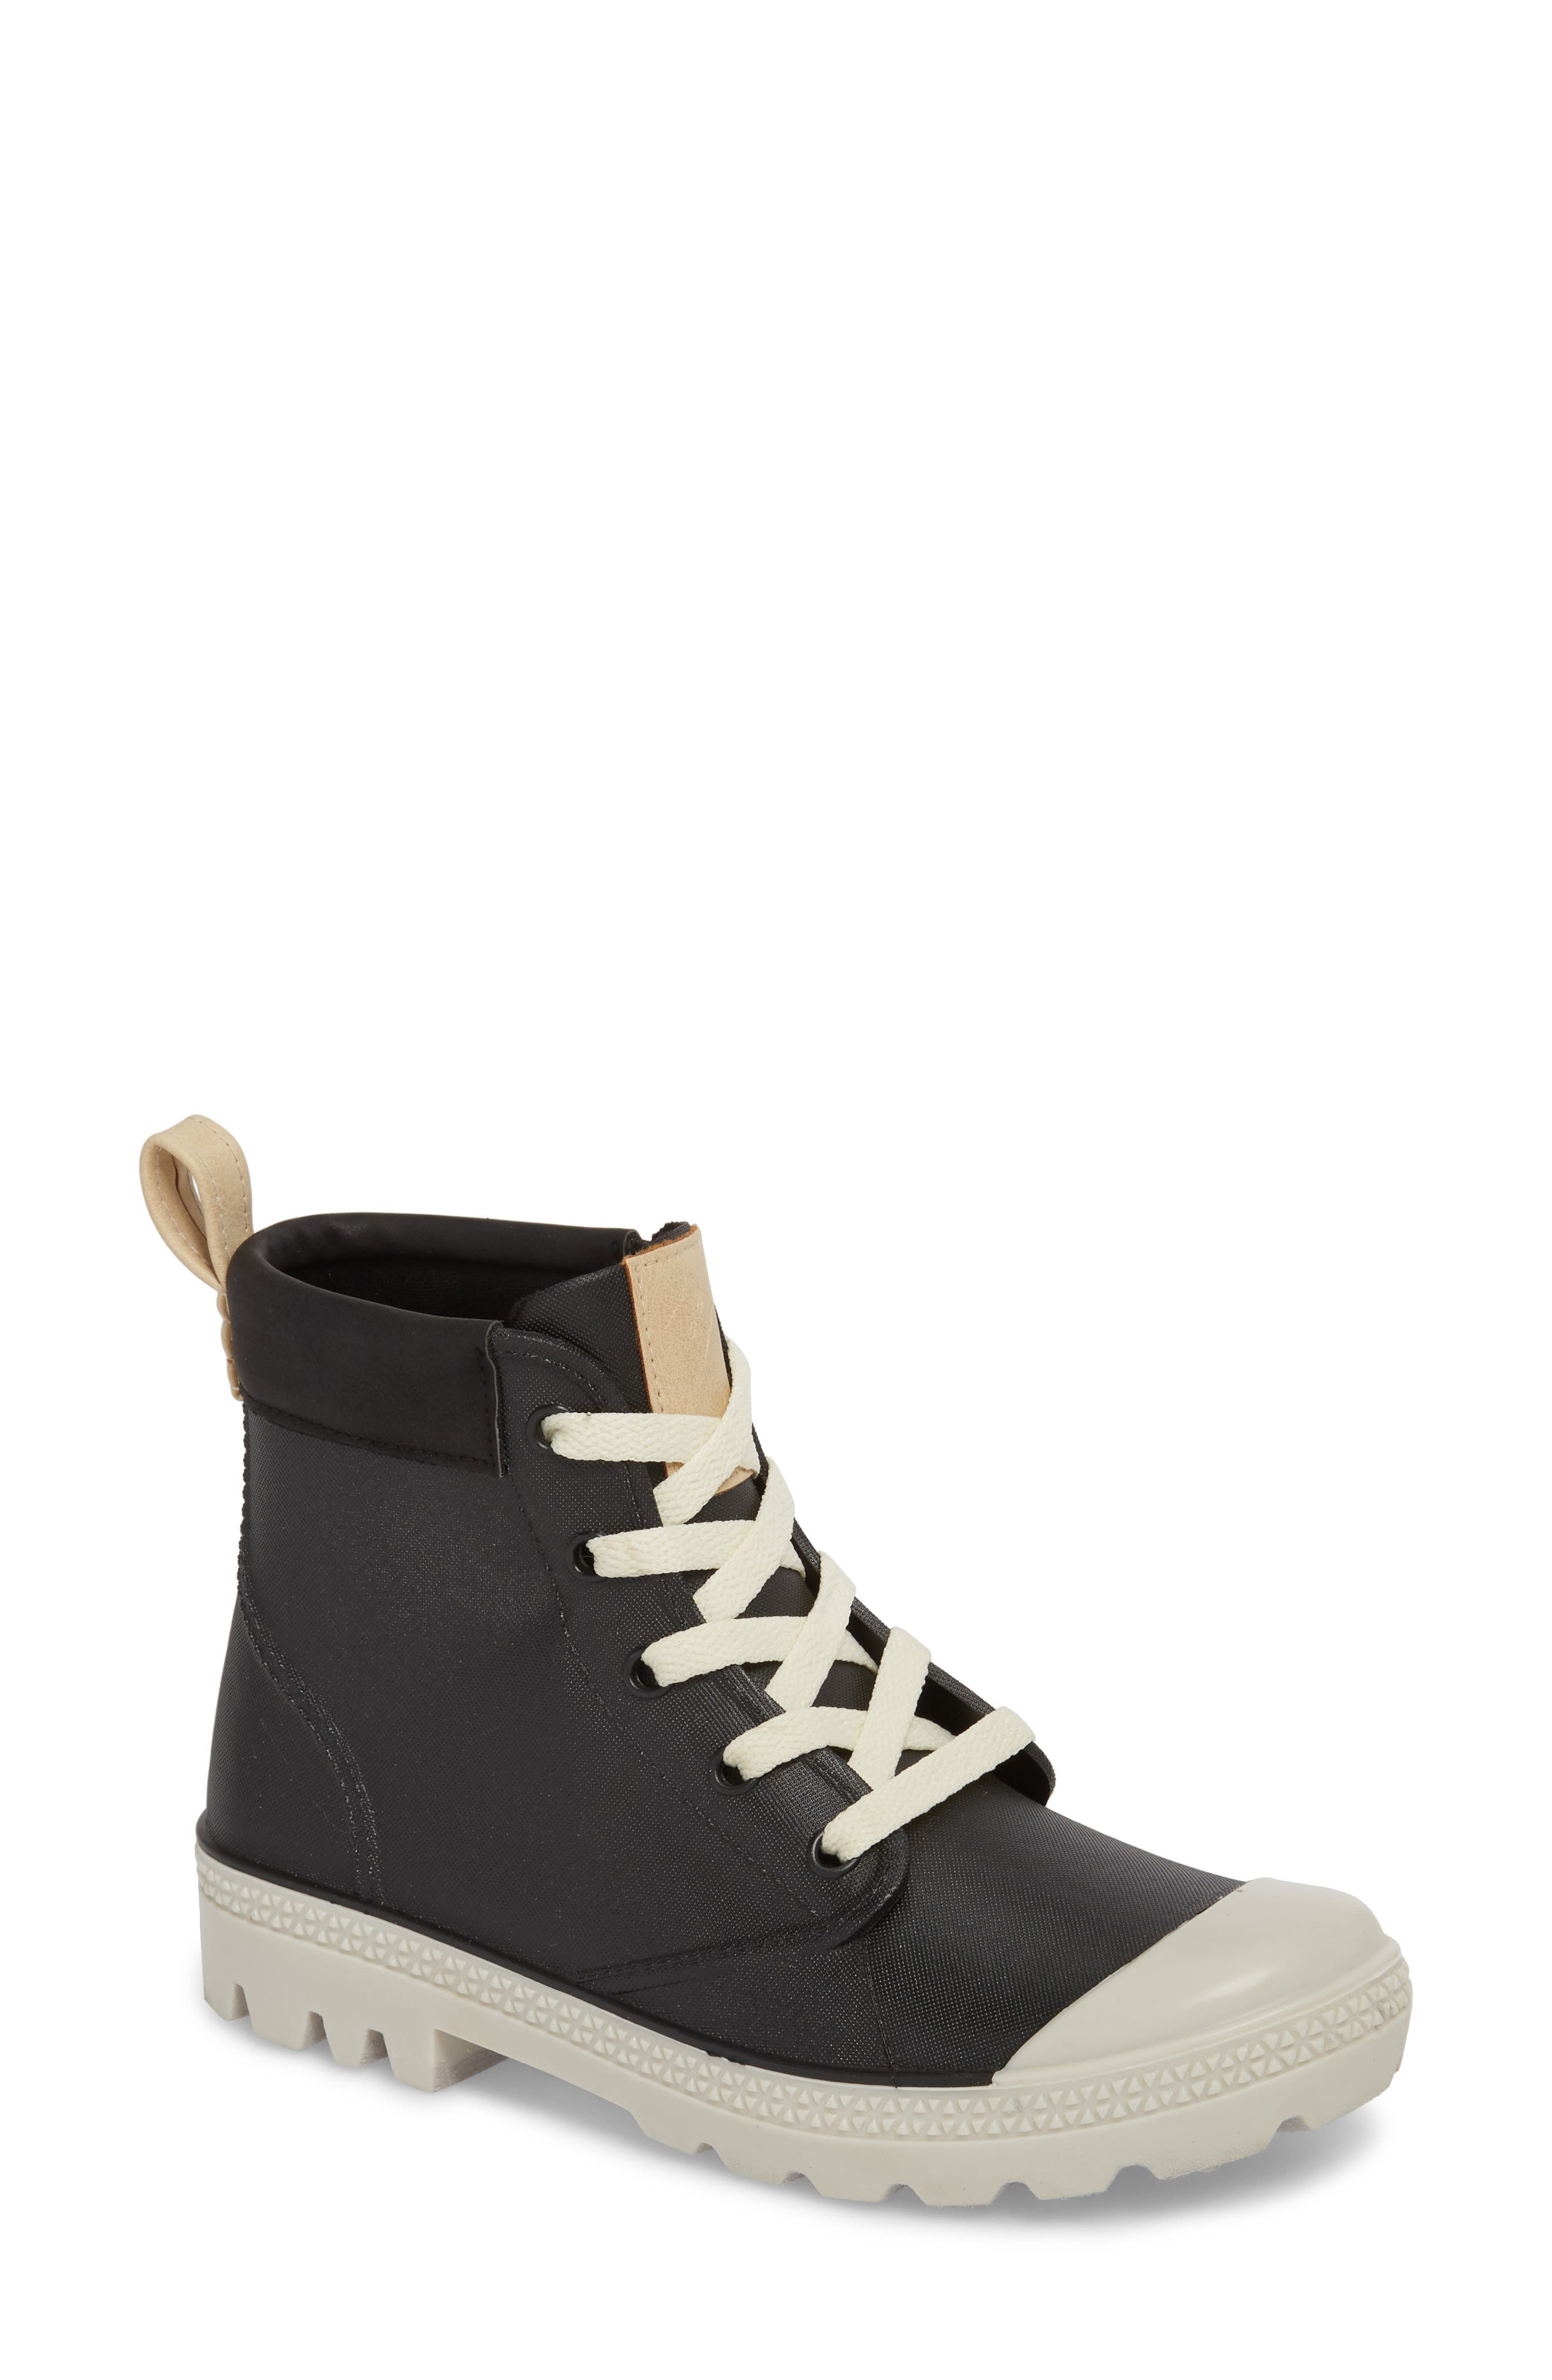 DÄV Melrose Waterproof Sneaker Boot, Main, color, BLACK